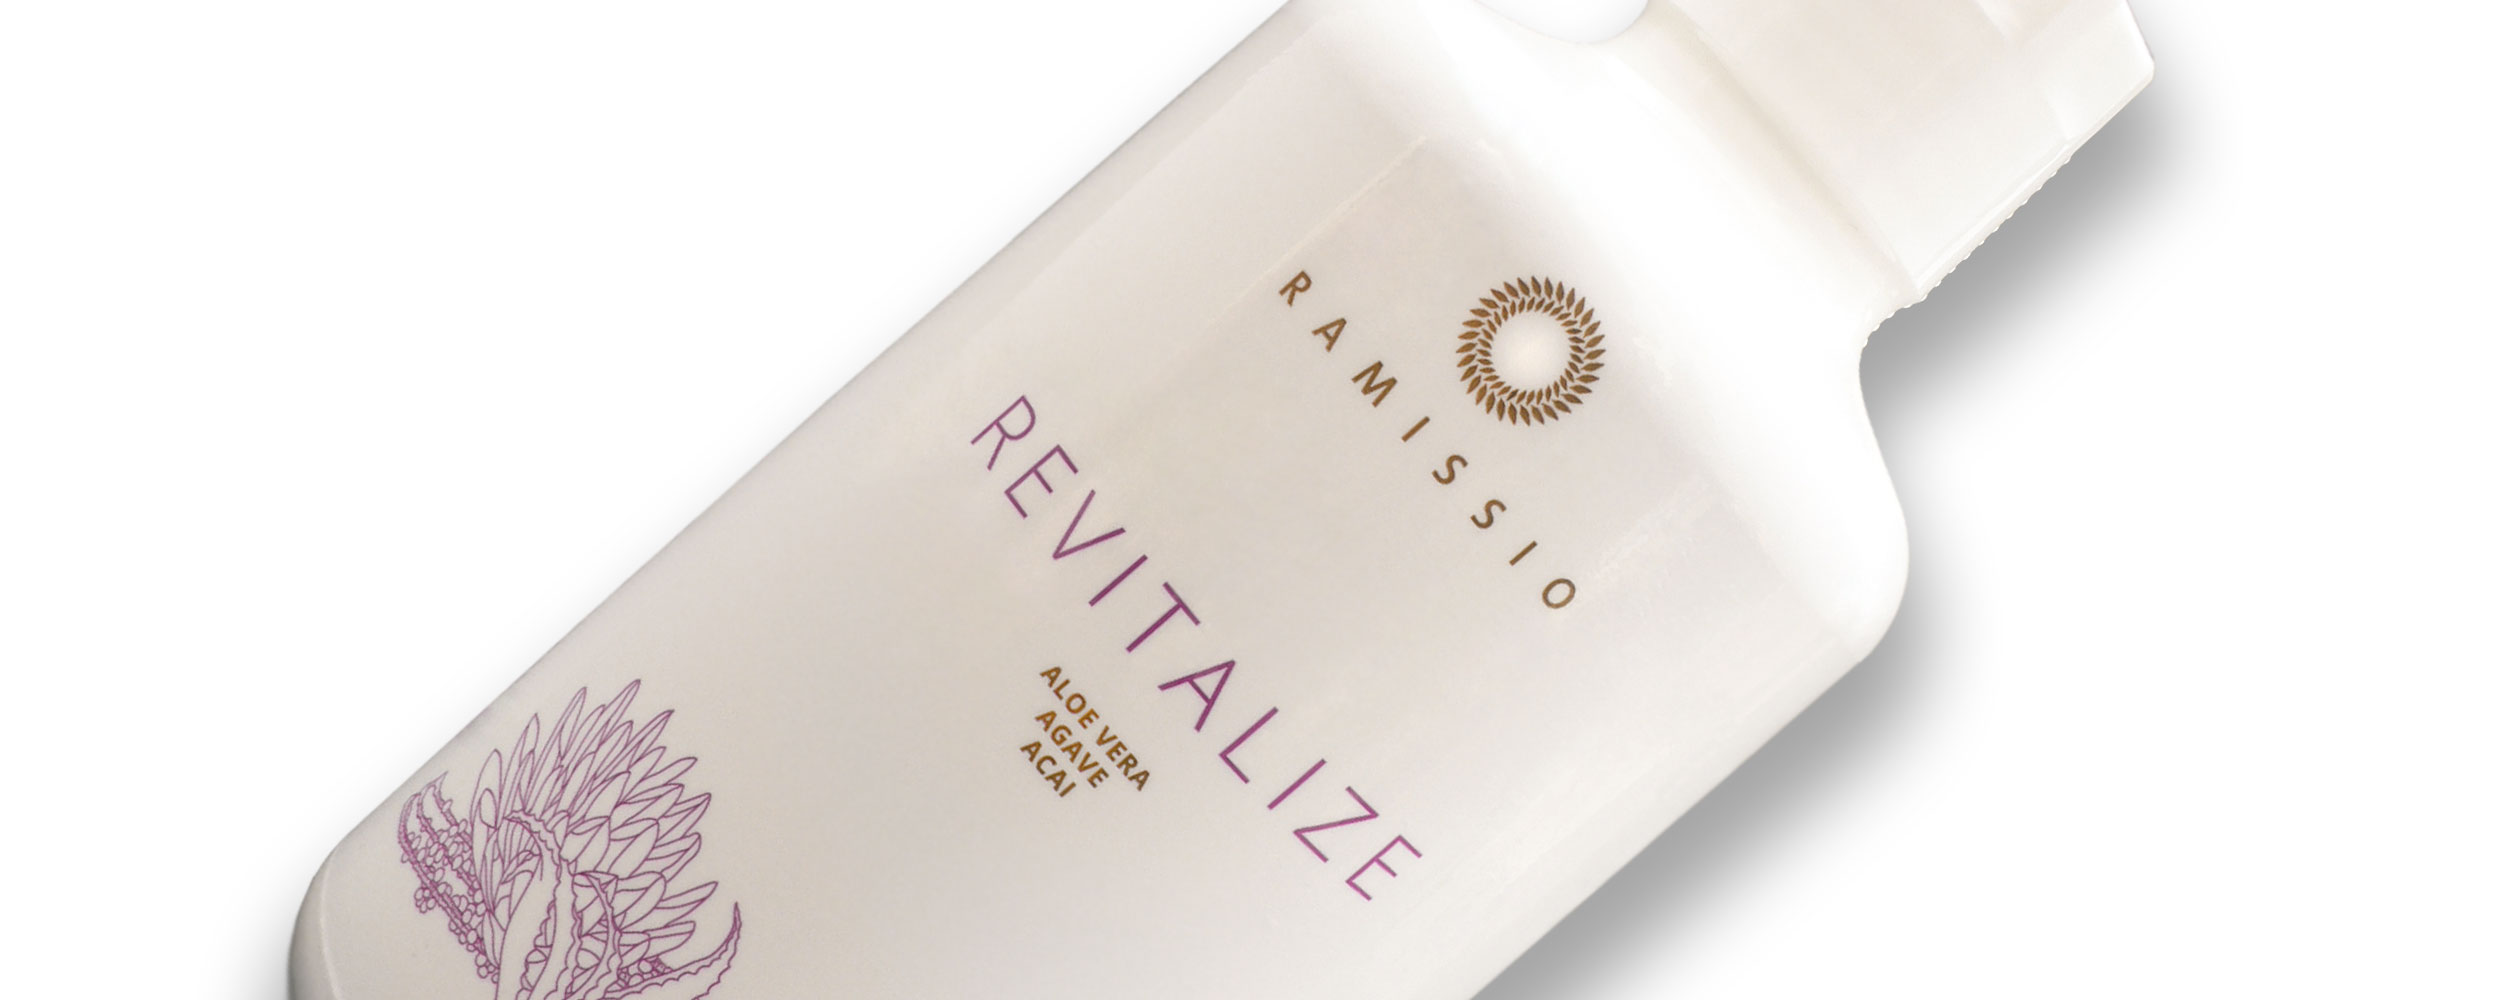 revitalize_bottle2